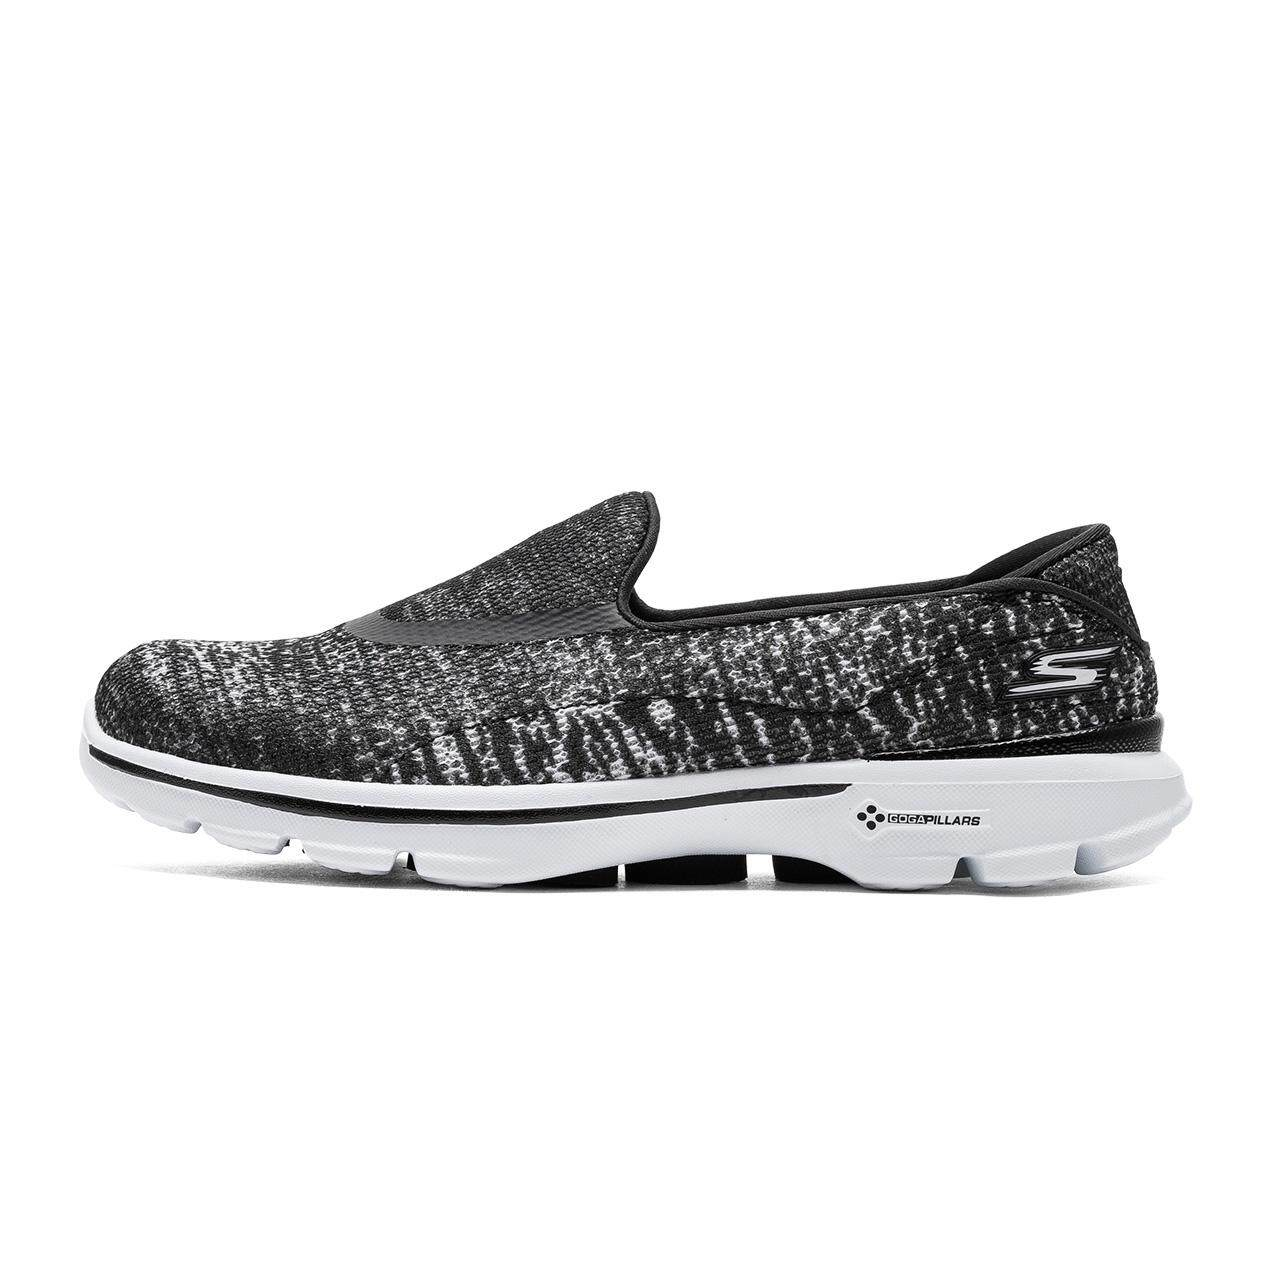 a59d072b6244 Skechers women Shoes Go Walk 3 New Style Light Weight a Pedal Walking Shoes  Athletic Shoes